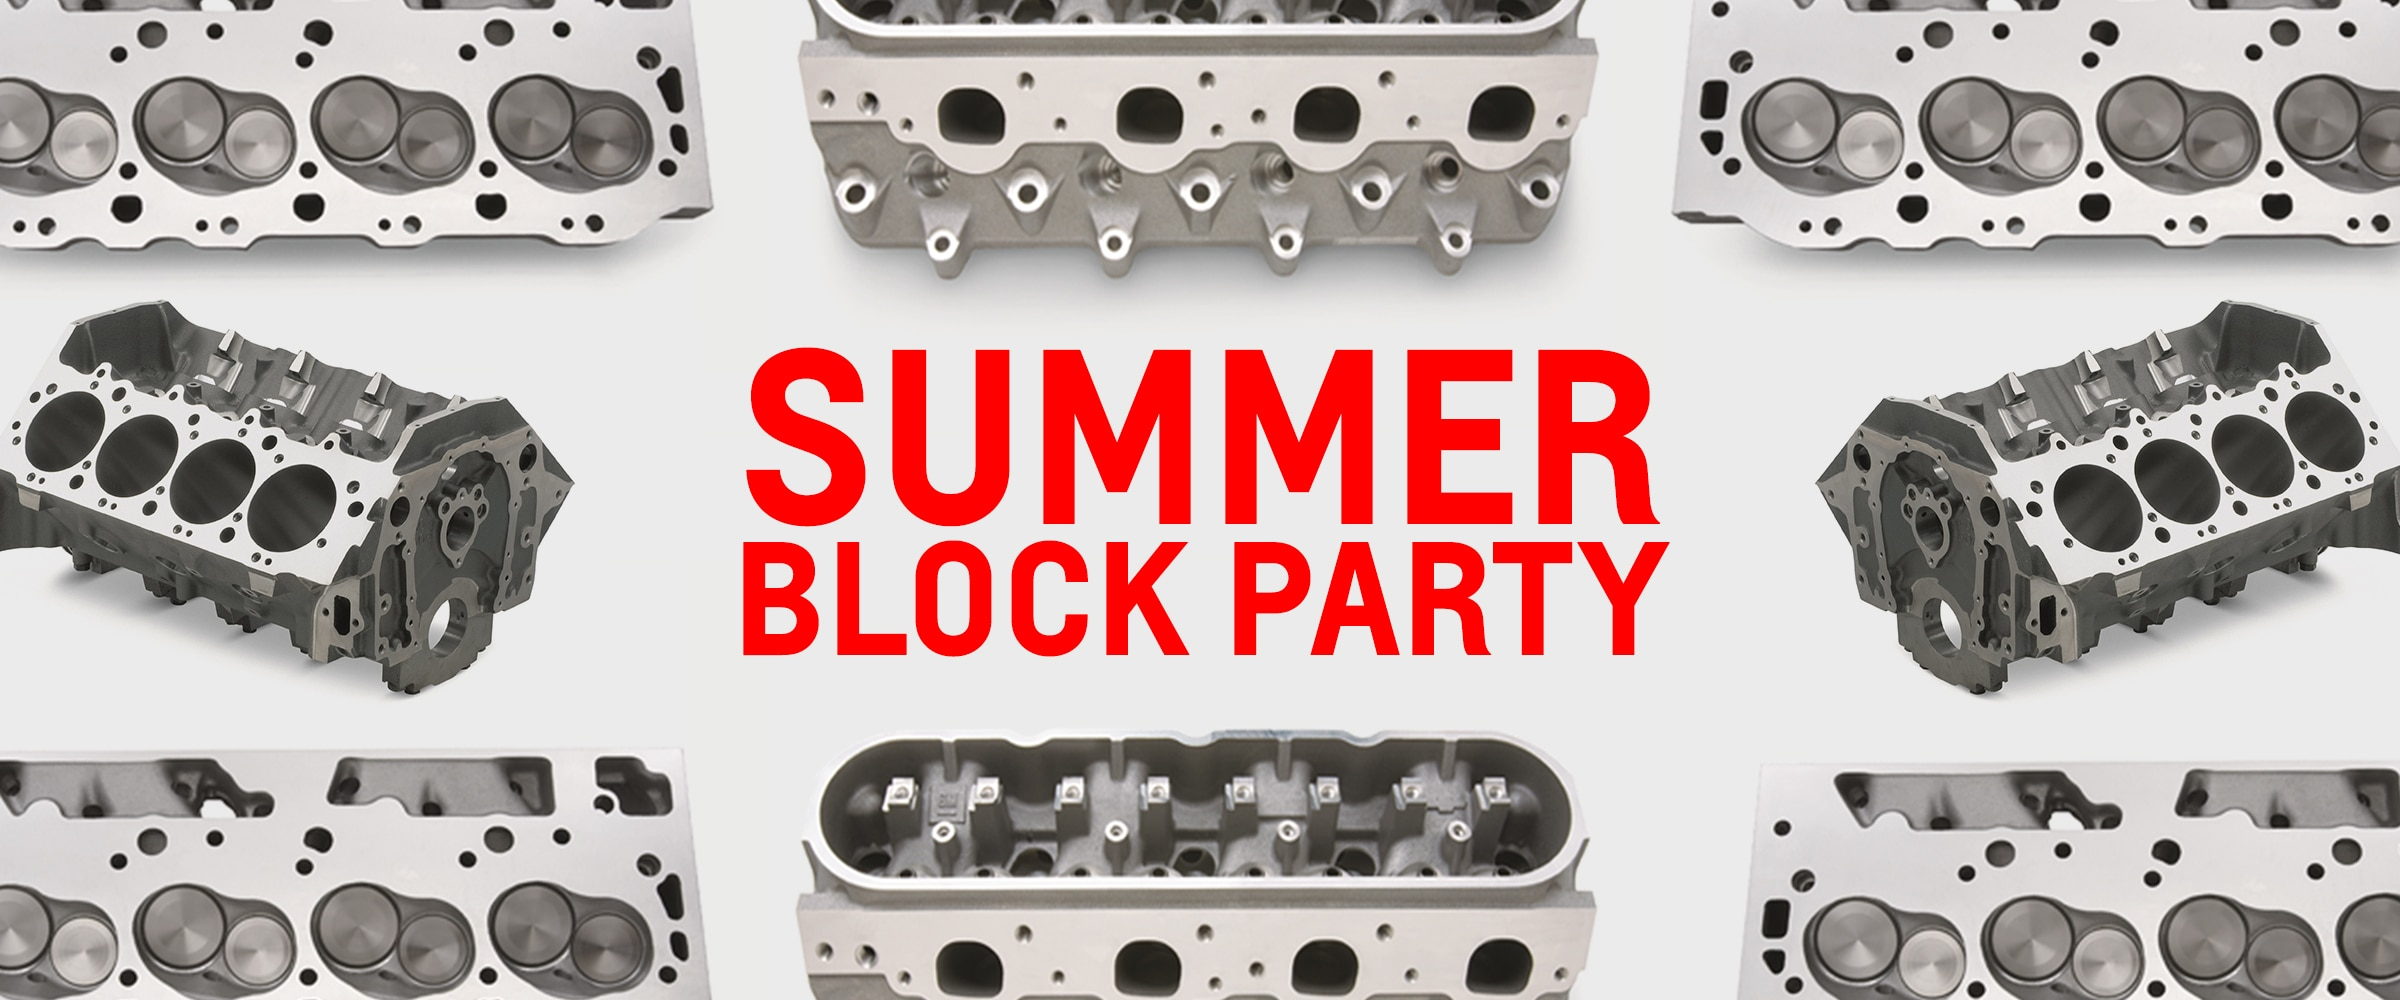 arts, Chevy, Chevrolet, Chevrolet Performance, Engines, Engine Components, Engine Parts, Blocks, Engine Blocks, Heads, Cylinder Heads, Offers, Rebates, Summer Block Party